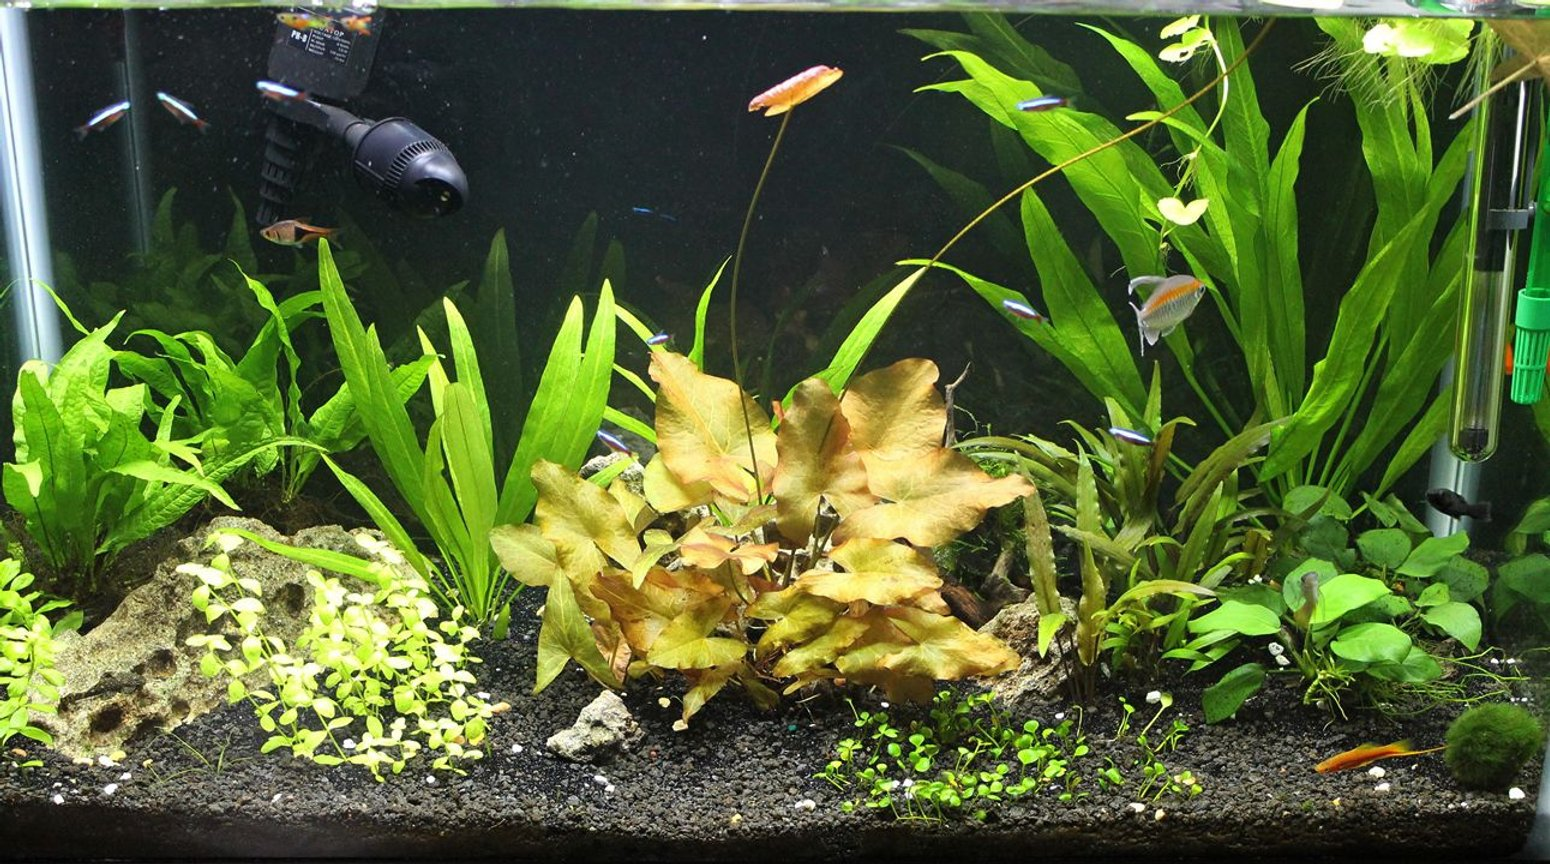 29 gallons planted tank (mostly live plants and fish) - 29 gallon - non CO2 - amazon sword - micro sword - lilies - anubias - crypts - java fern - australis bacopa - moss - cardinal tetras - congo tetra - dwarf pleco - otto - assassin snails - lyretails - swords -